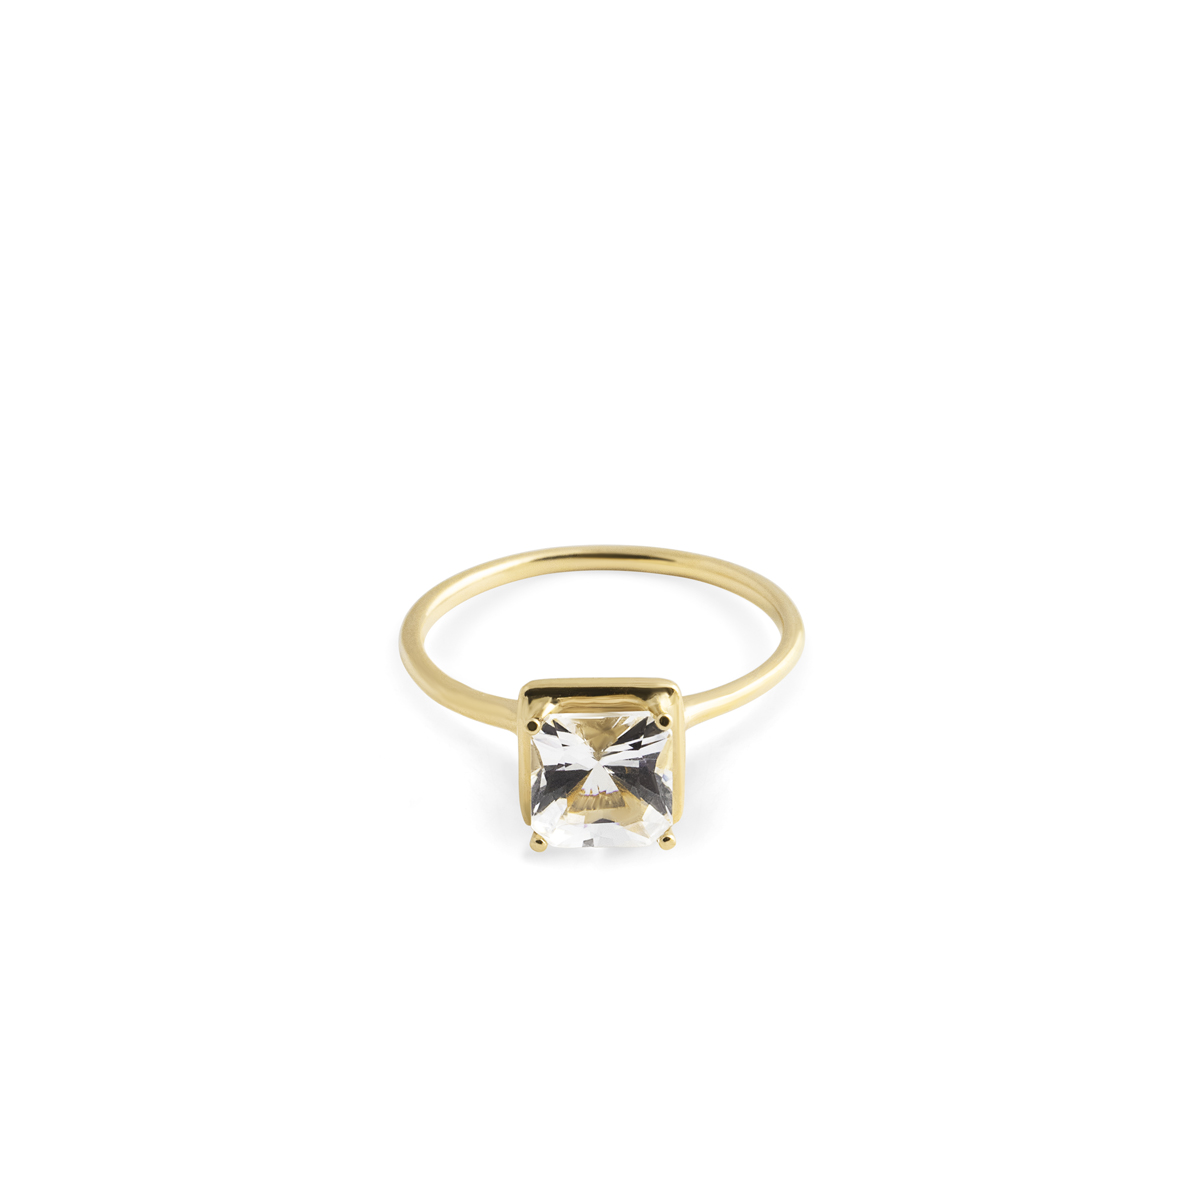 18K THIN SQUARE TOPAZ RING in the group SHOP / RINGS at EMMA ISRAELSSON (ring077)